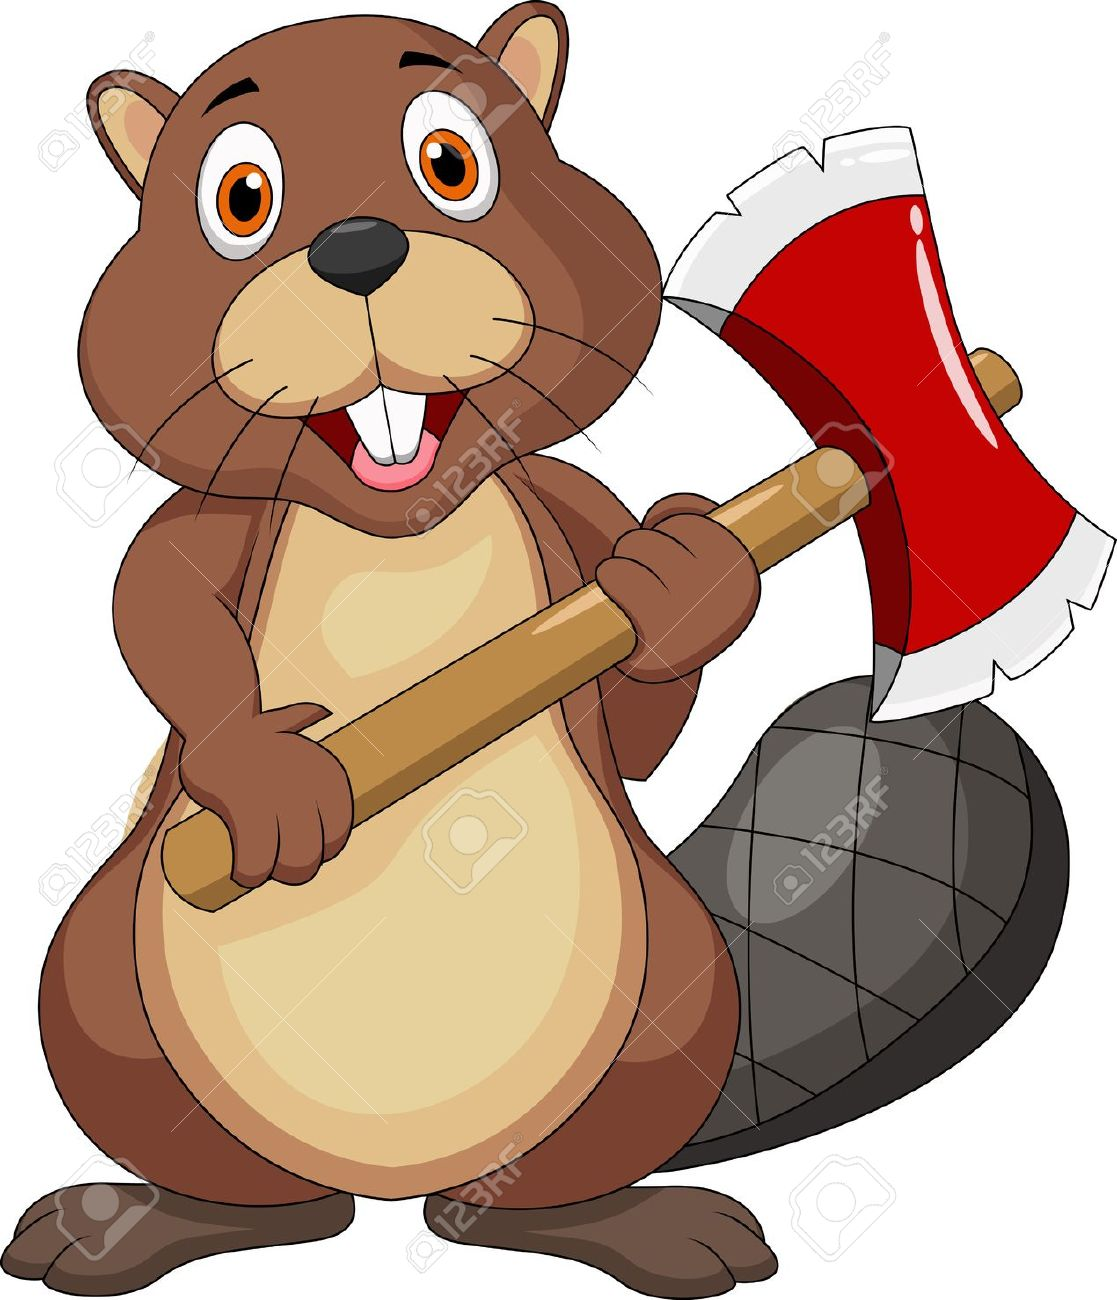 Beaver clipart #3, Download drawings